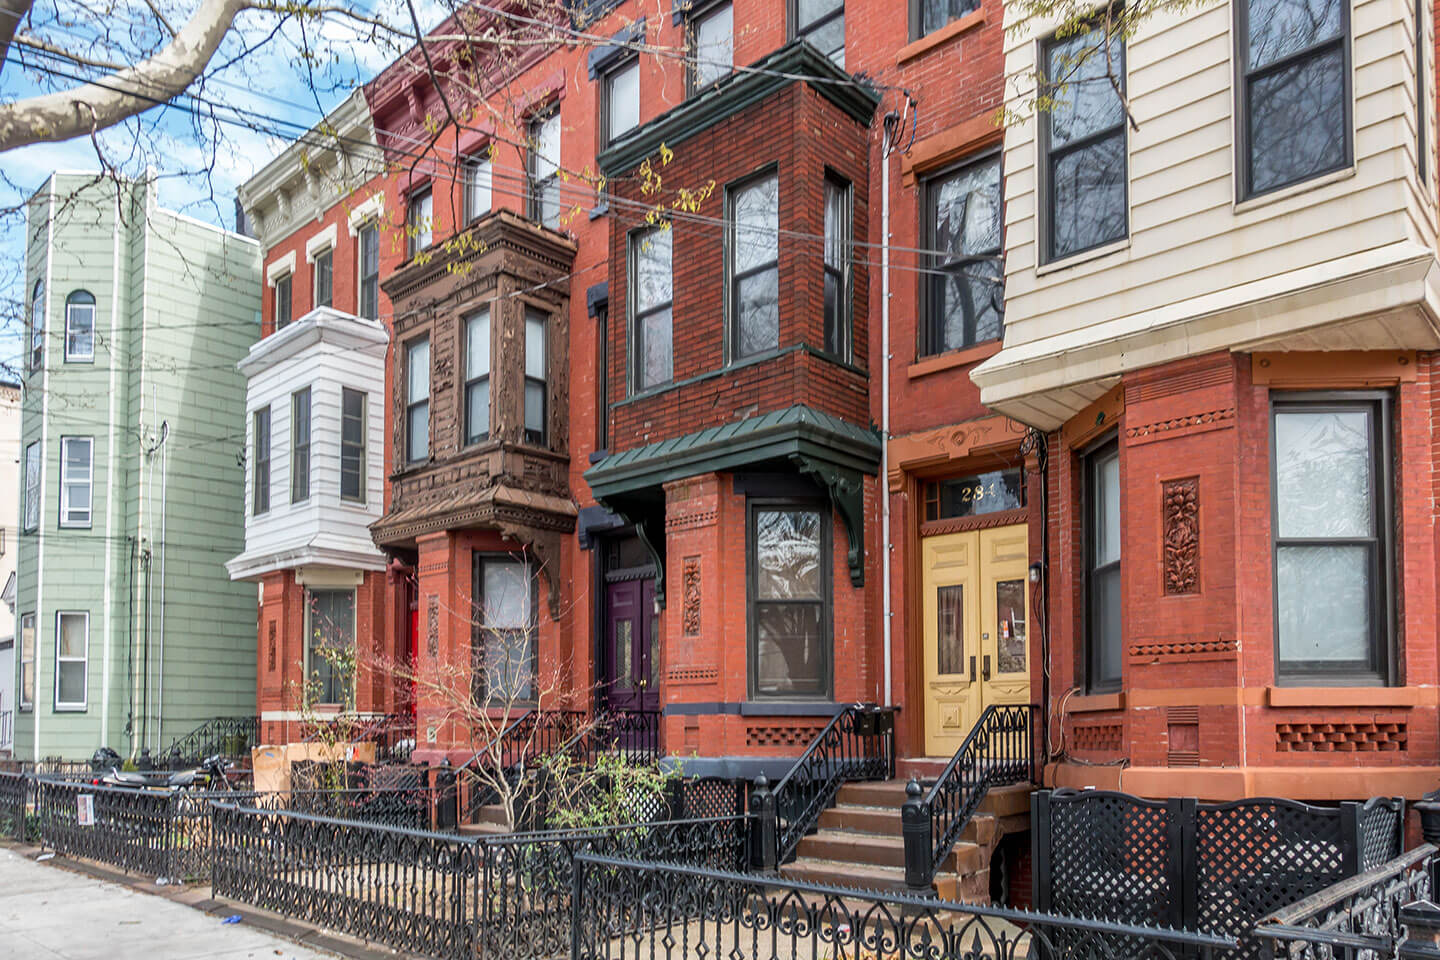 lafayette-jersey-city-homes-architecture